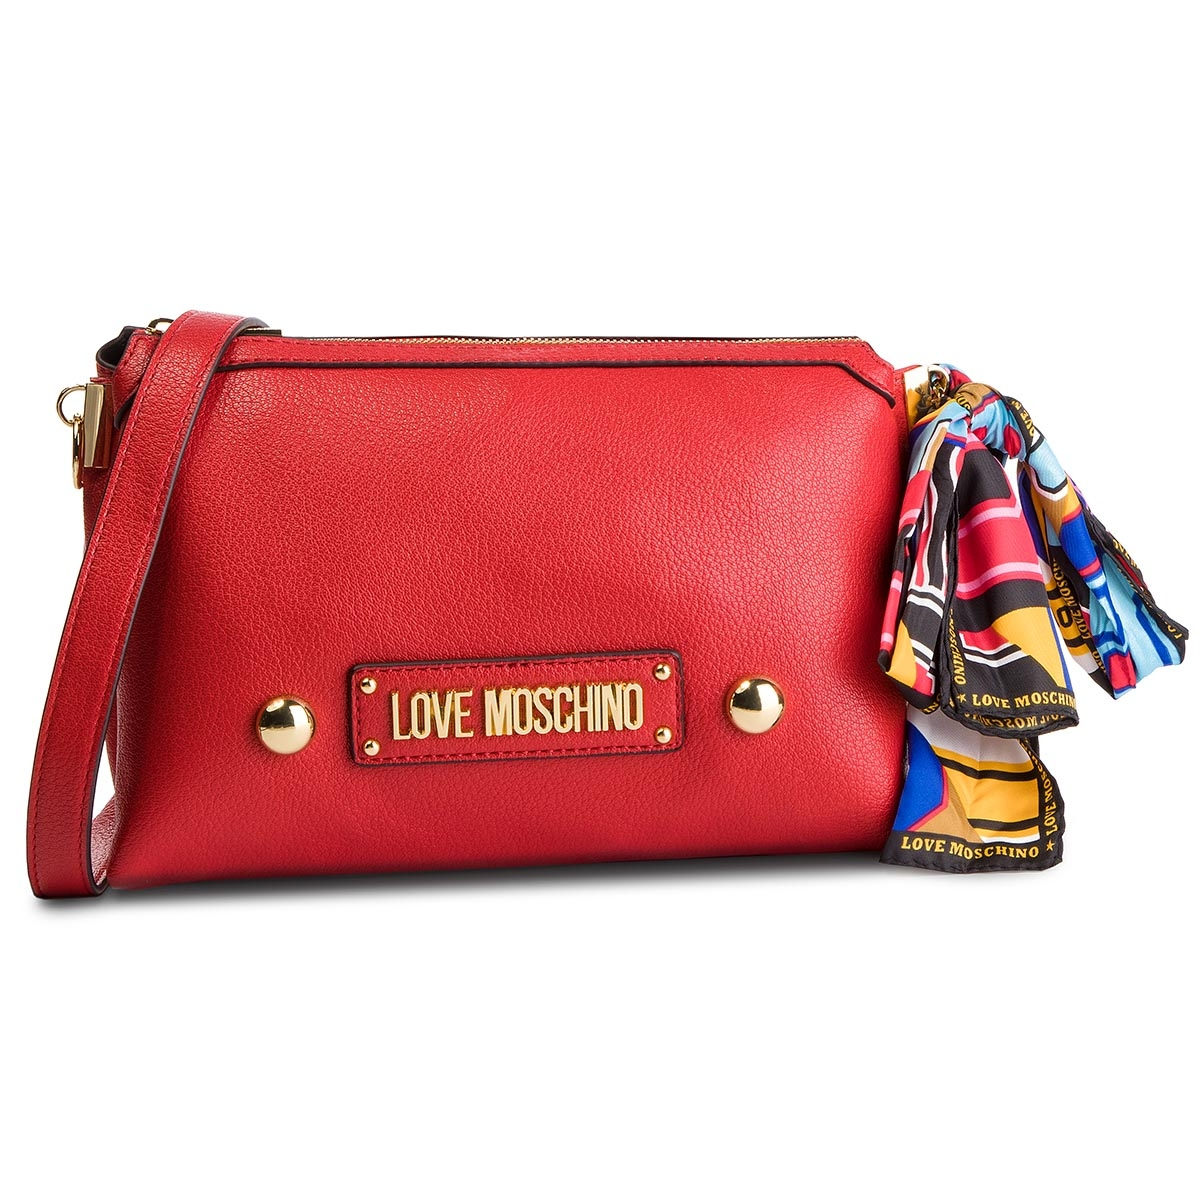 Geantă LOVE MOSCHINO - JC4044PP17LD0500 Rosso